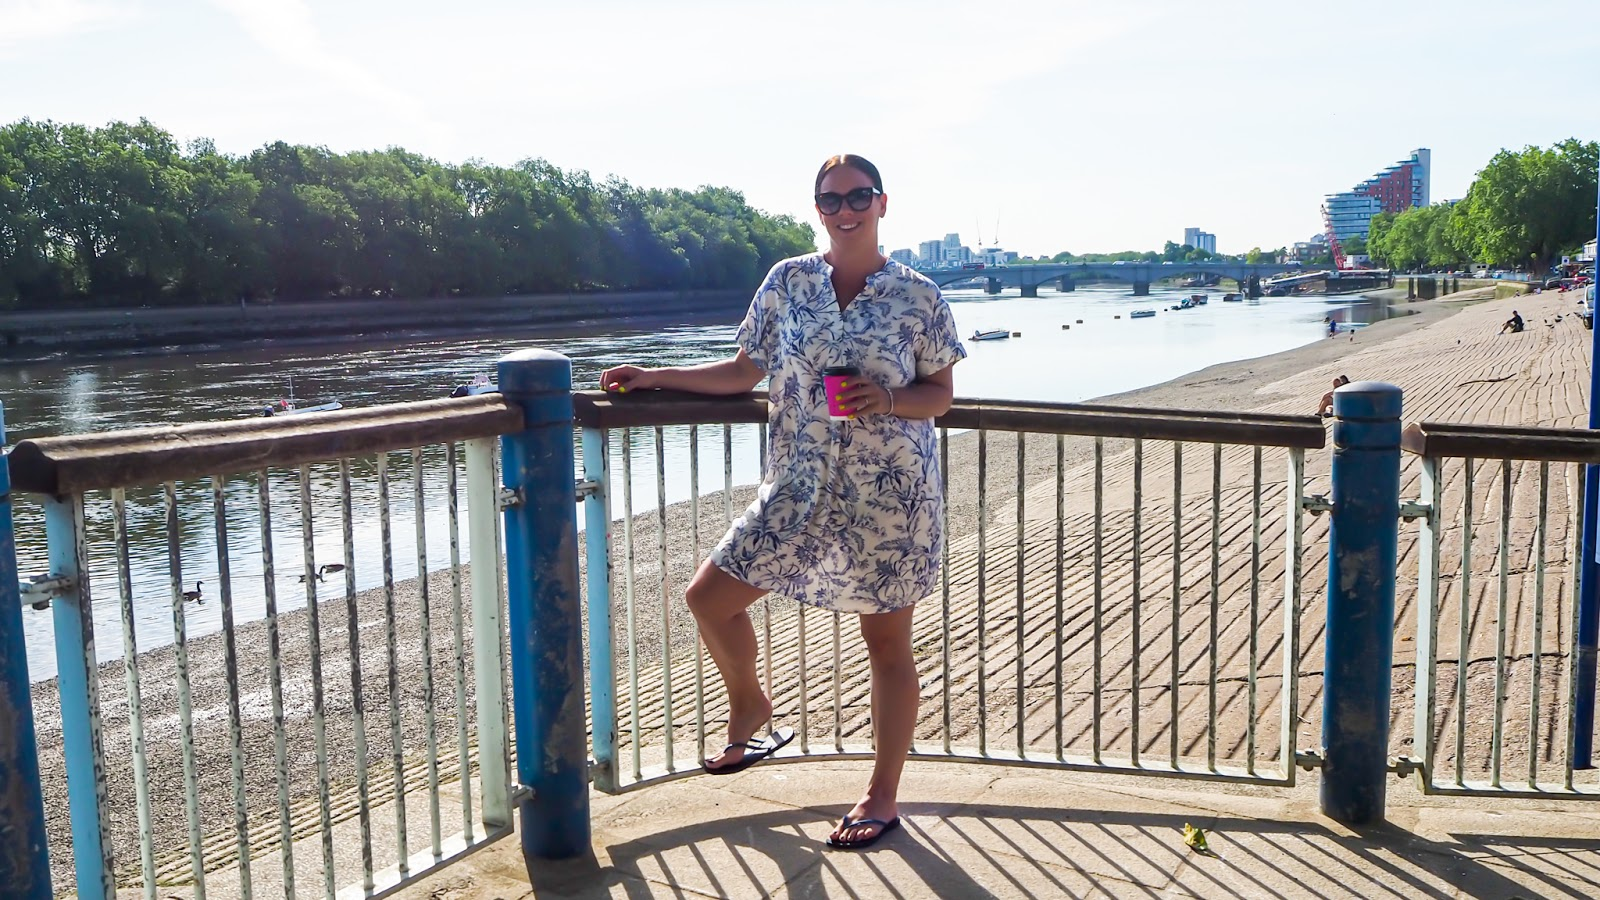 coffee on Putney Embankment overlook the River Thames